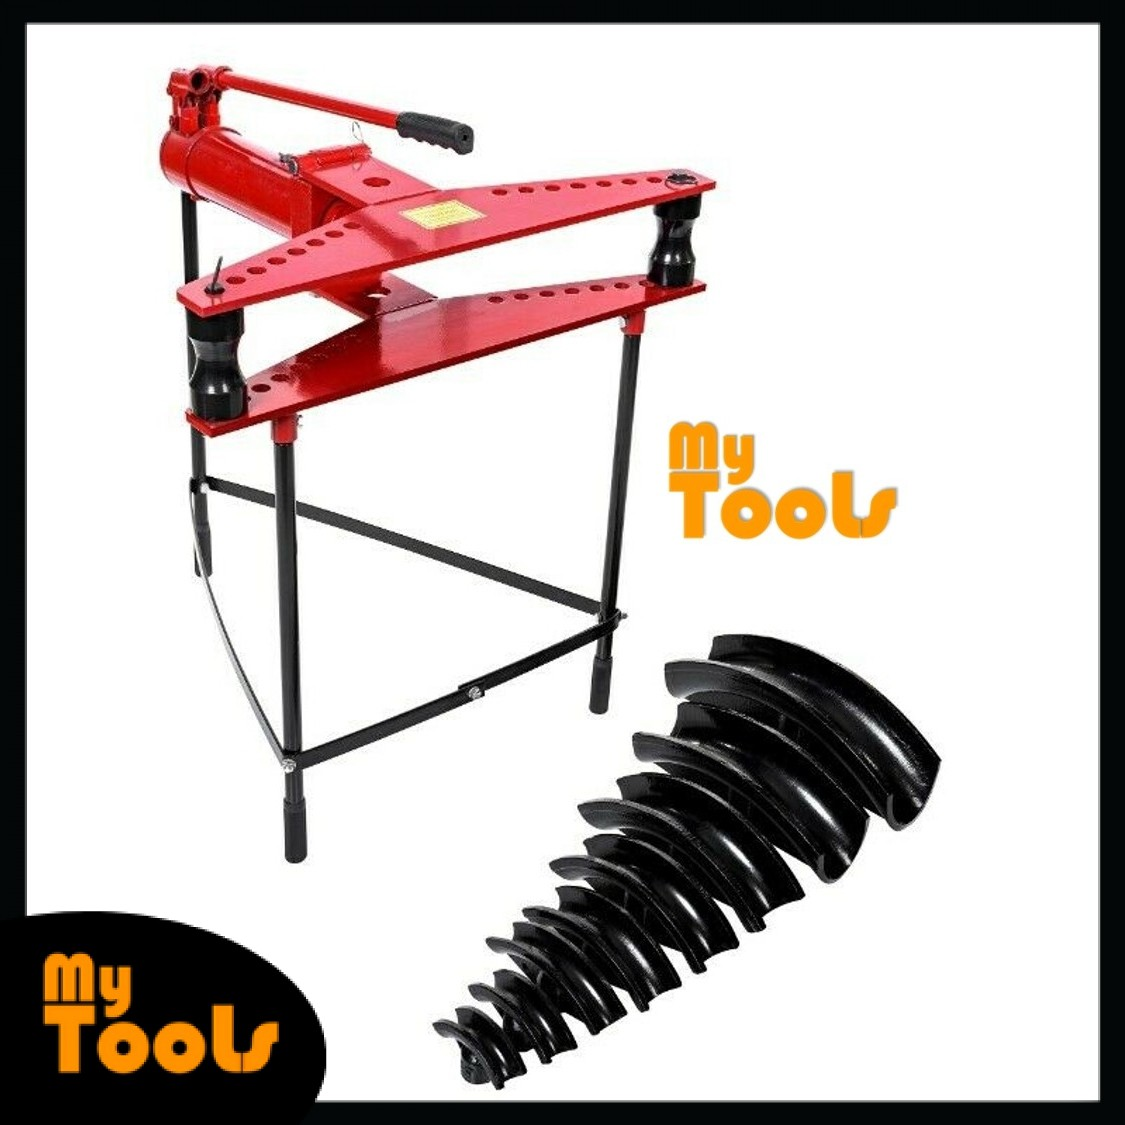 Mytools 16T 16 Ton Hydraulic Pipe Bender with Stand